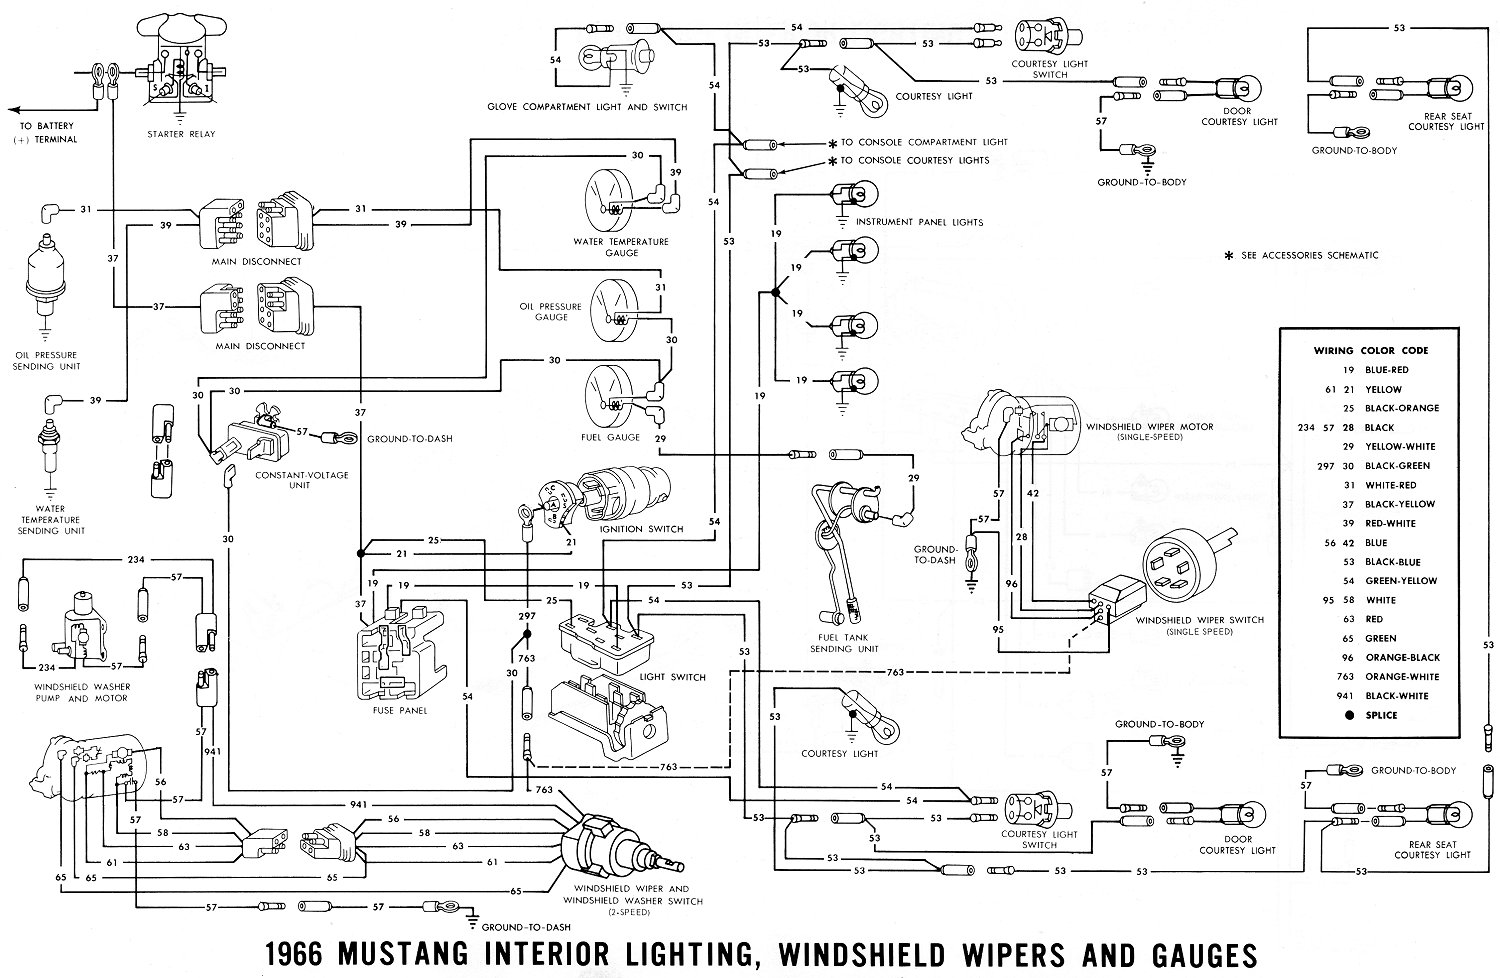 TL_5869] 67 Mustang Fog Light Wiring Schematic Download DiagramMill Gue45 Mohammedshrine Librar Wiring 101